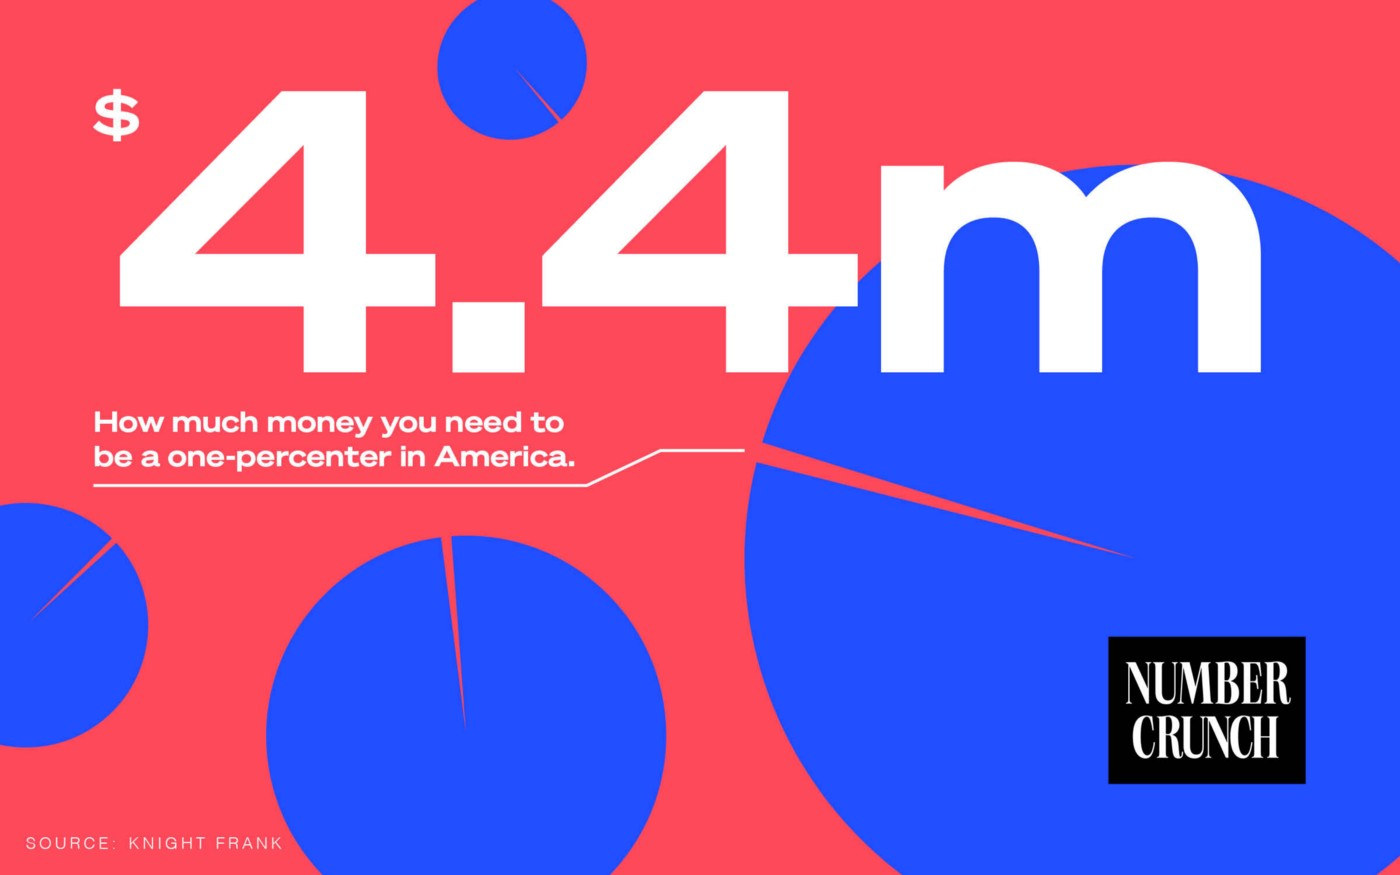 """A infographic illustration with the """"Number Crunch"""" logo and the text """"$4.4 million: How much money you need to be a 1 percenter in the United States Source: Knight Frank"""""""